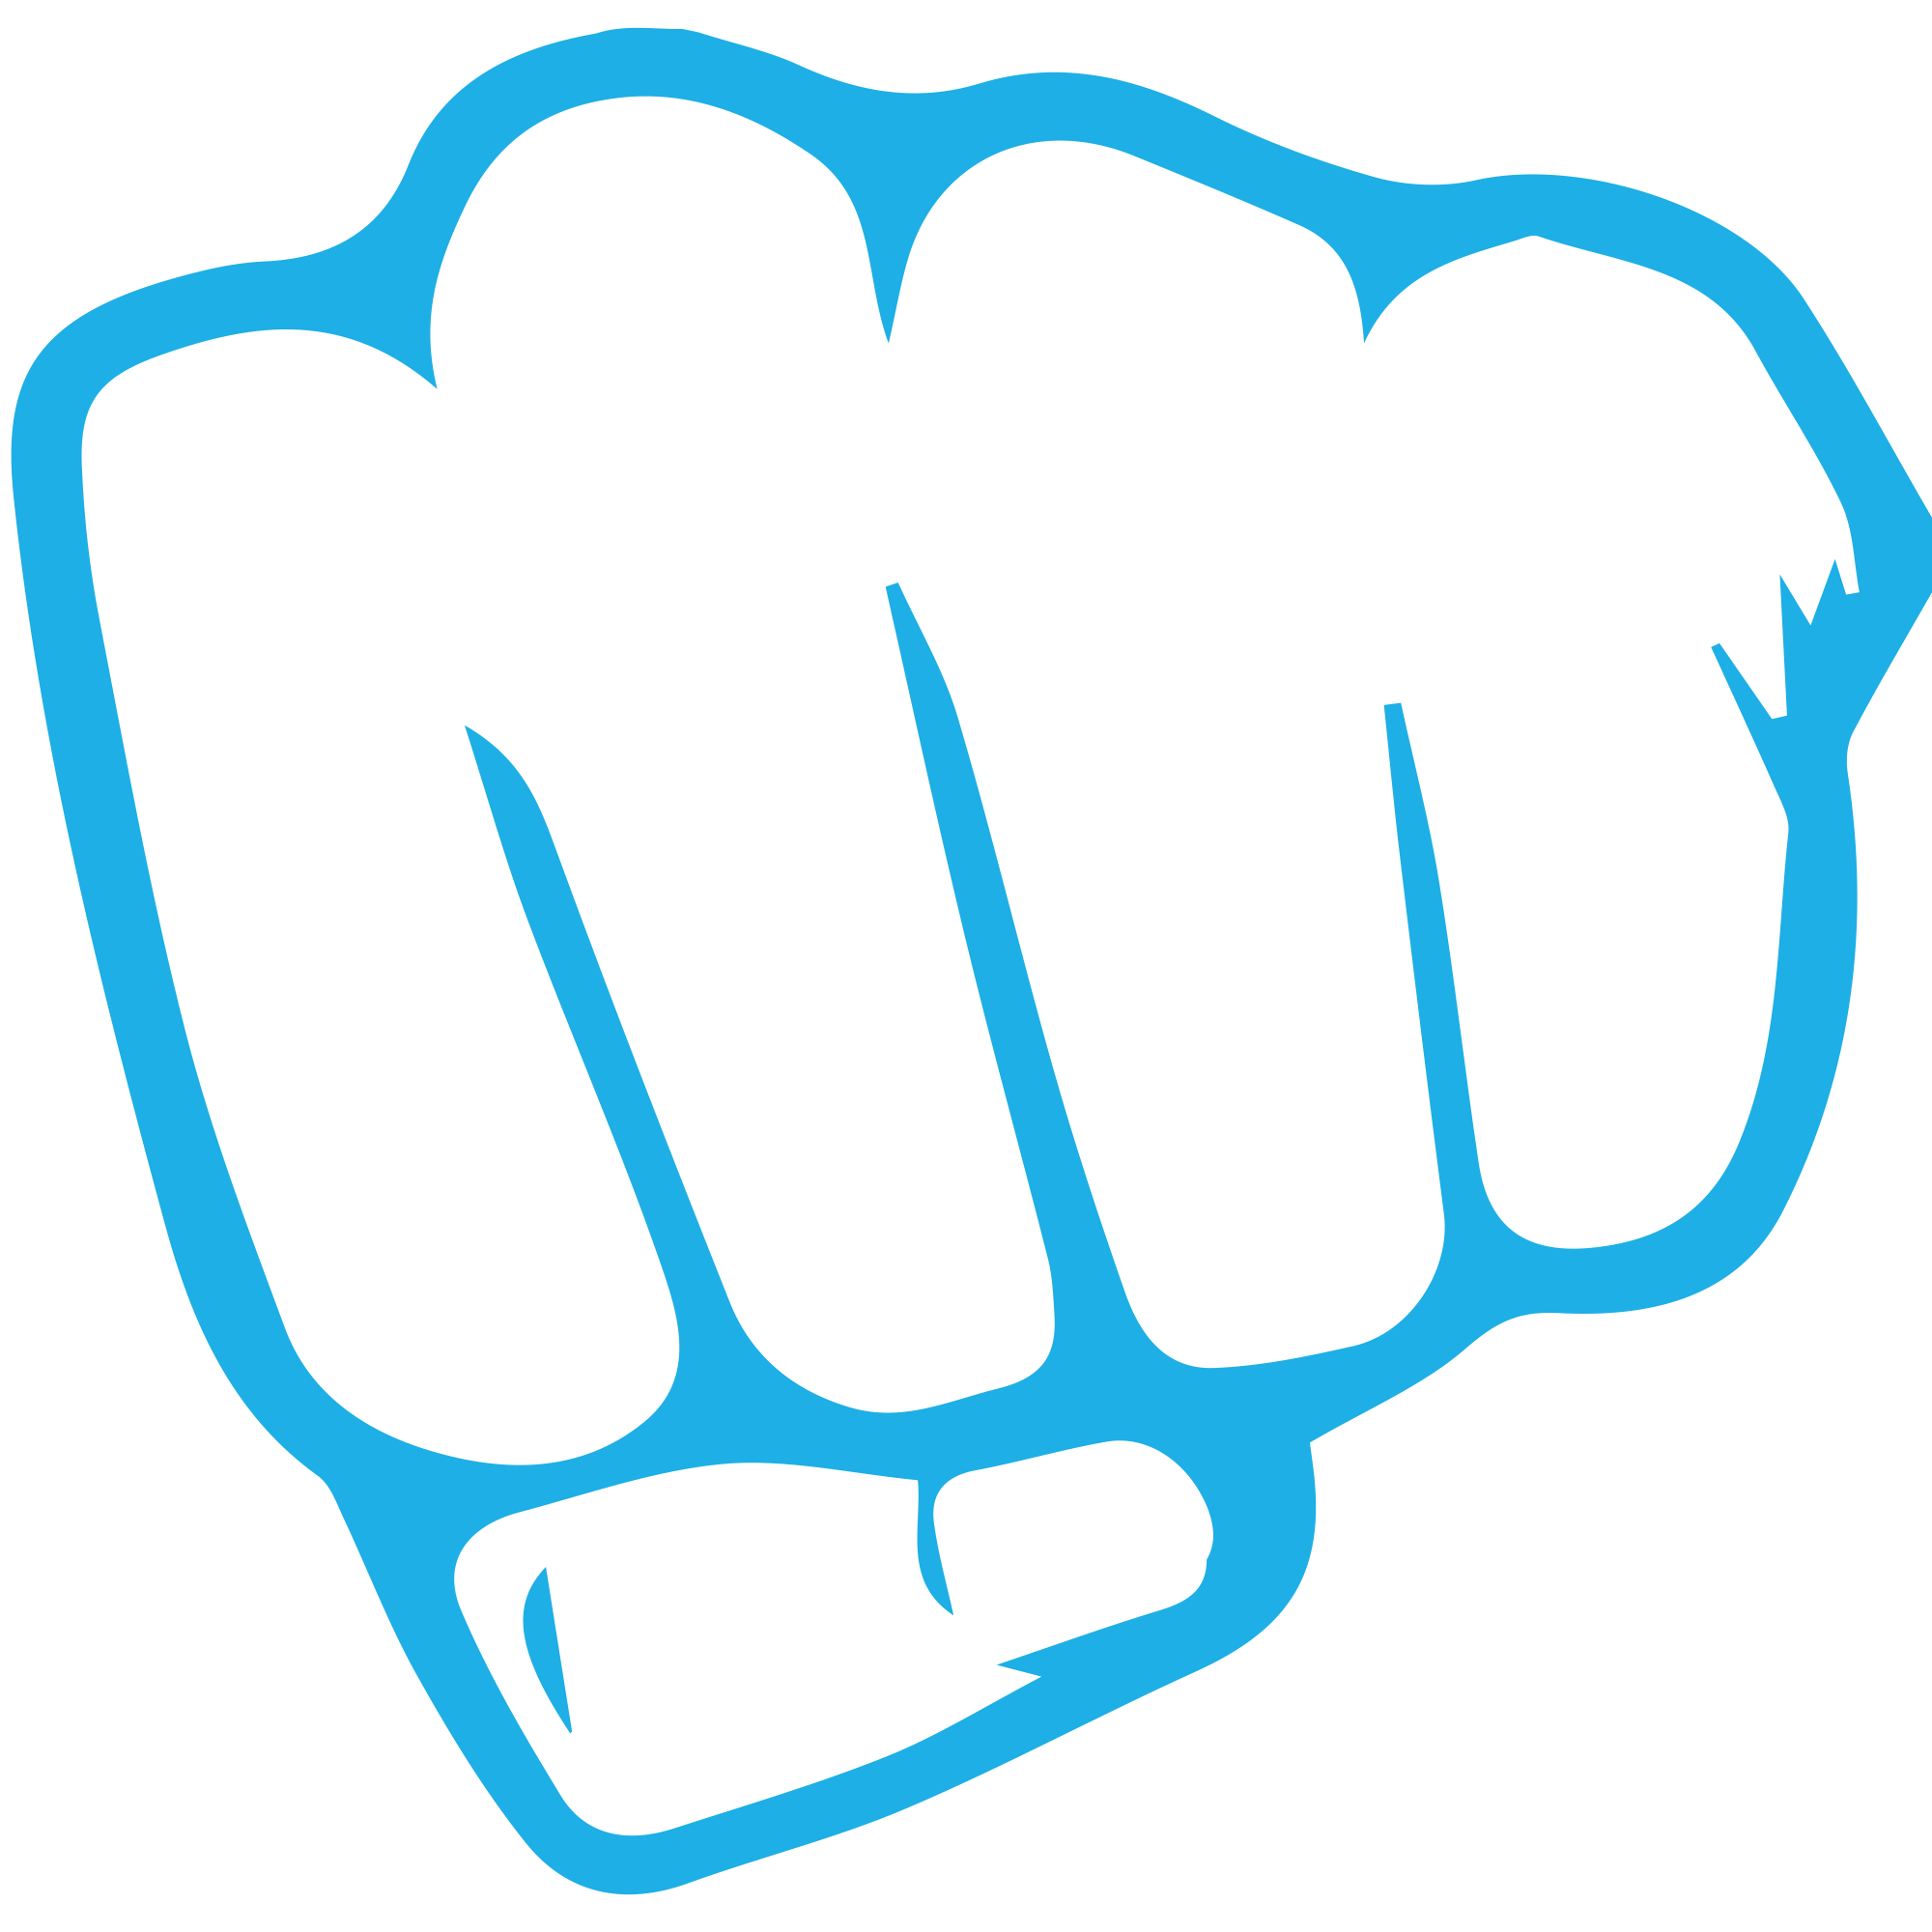 Fist clipart side. Png punching transparent images